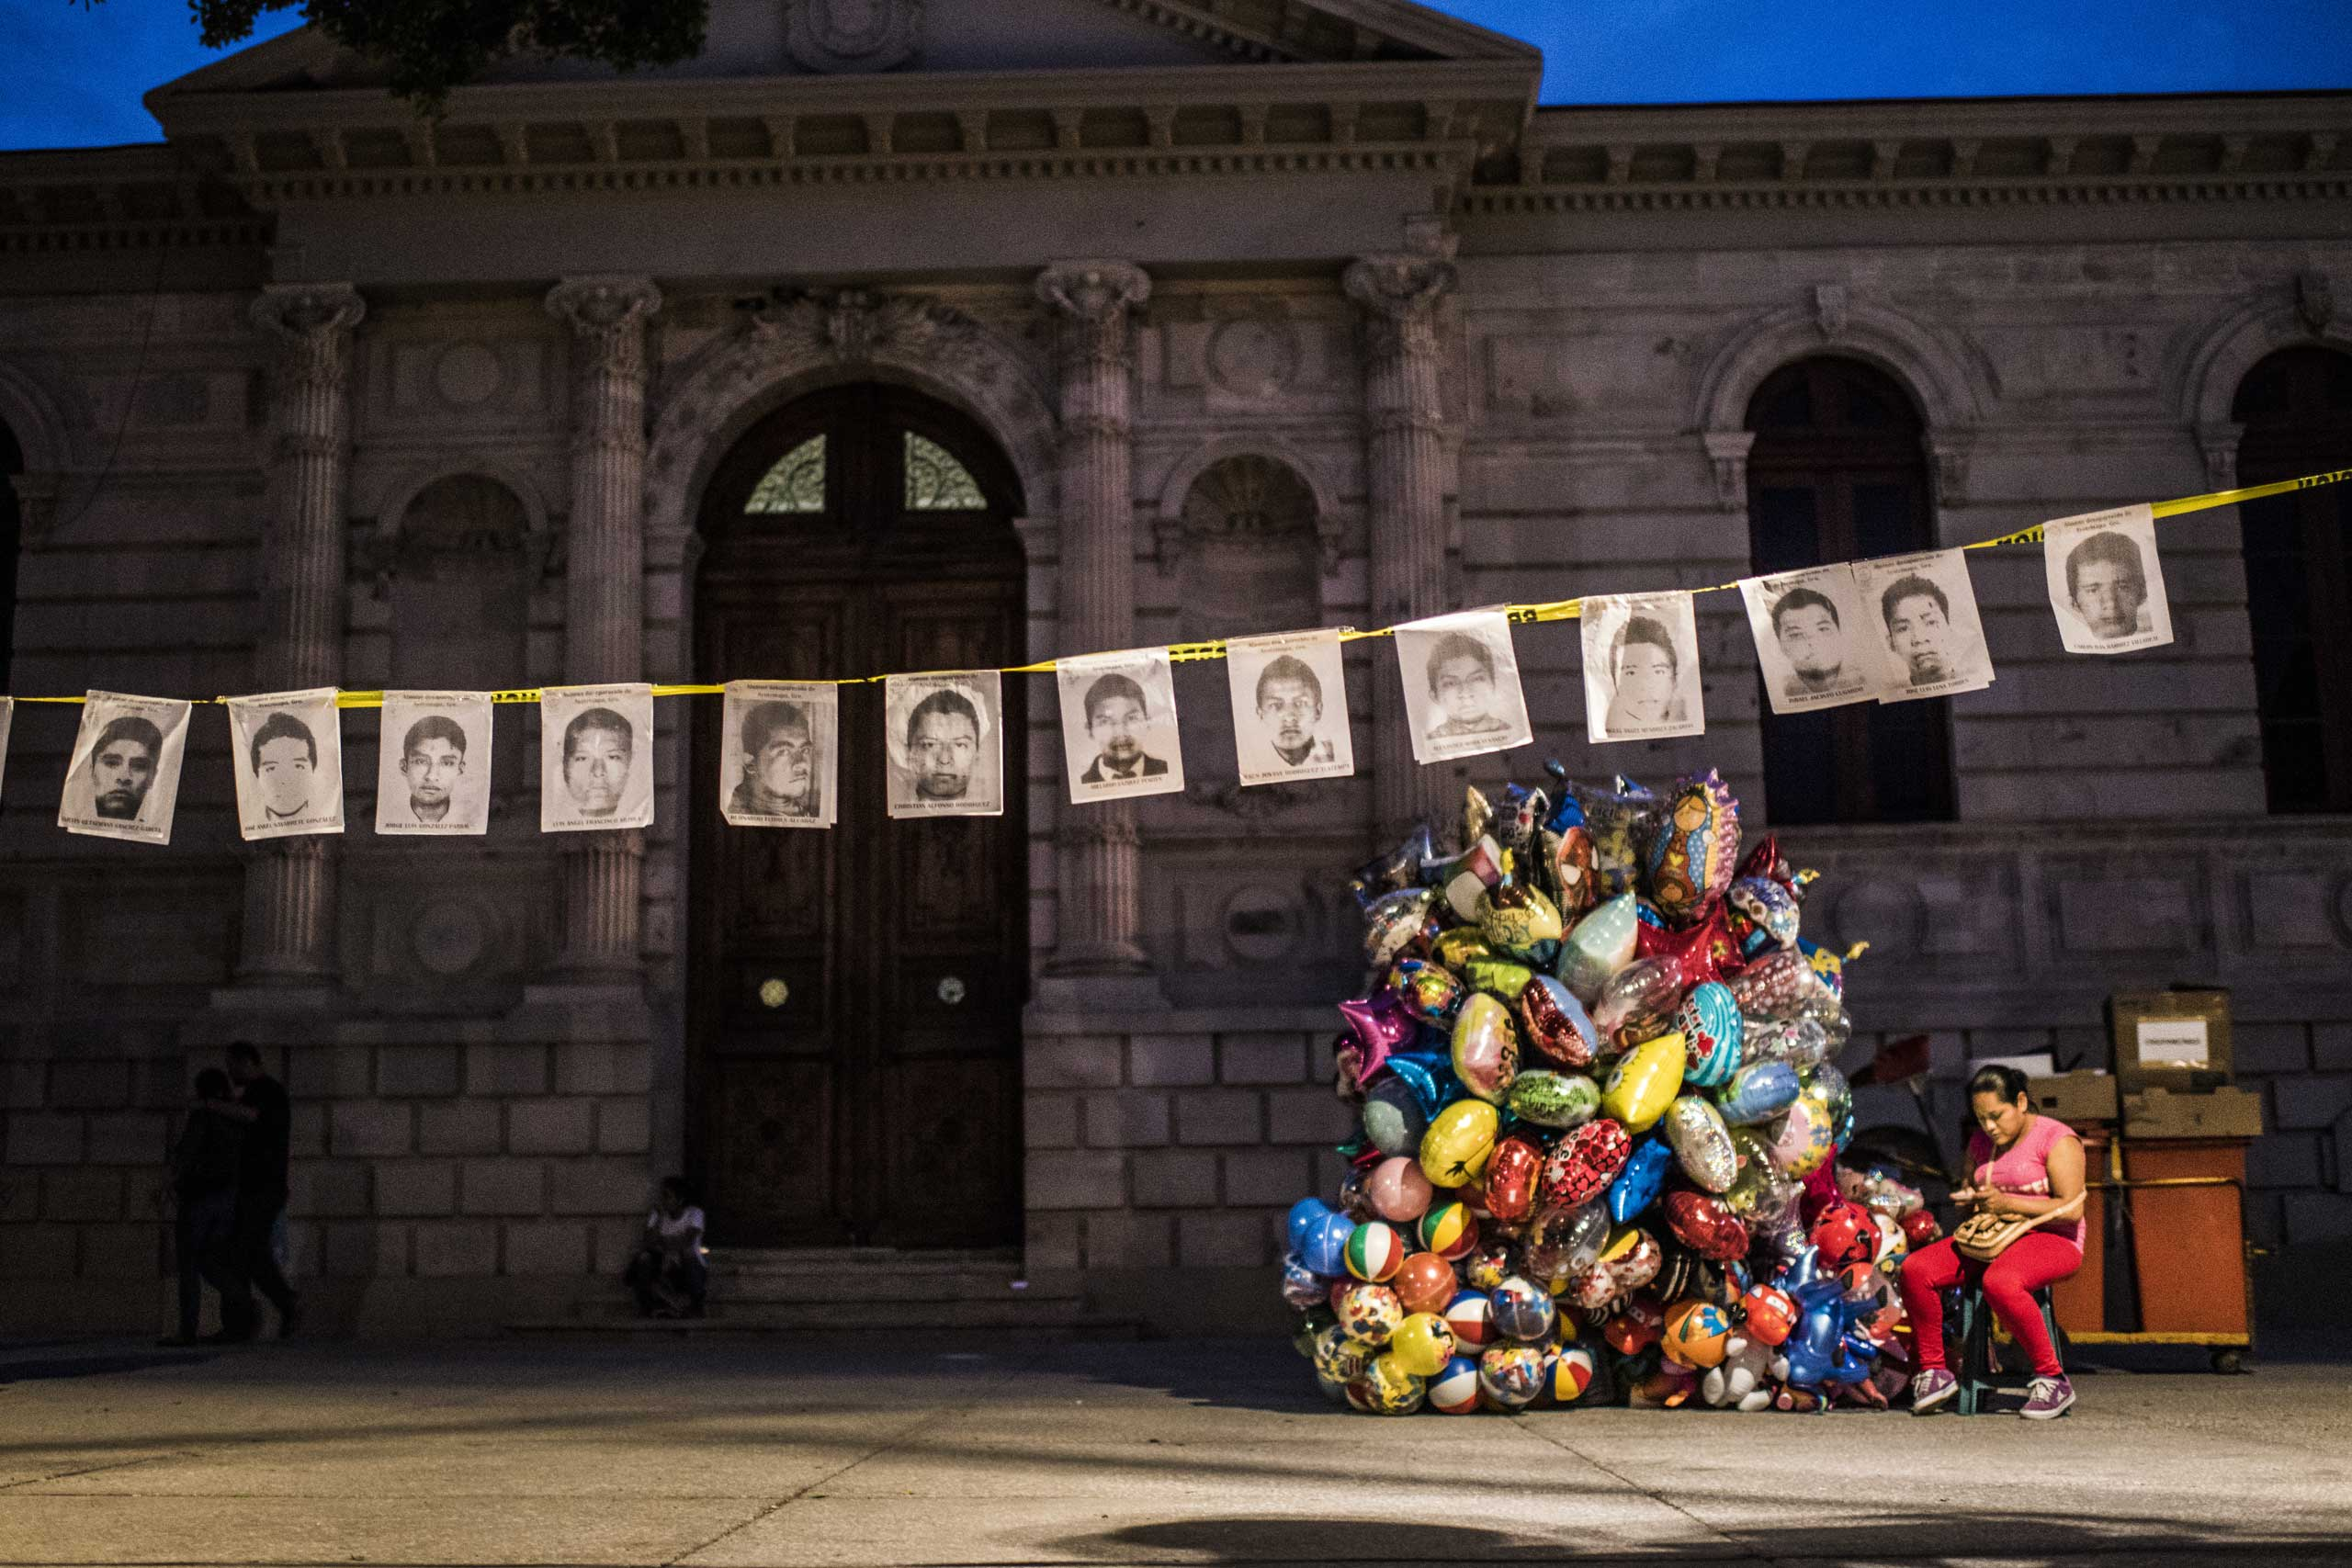 Portraits of 43 missing students allegedly abducted and killed by a drug gang, aided by corrupt police officers, in Mexico's Southern Guerrero state. hang in the main square of Chilpancingo de los Bravo, the capital of Guerrero State where the drug cartels operate with impunity, Oct. 31, 2014.